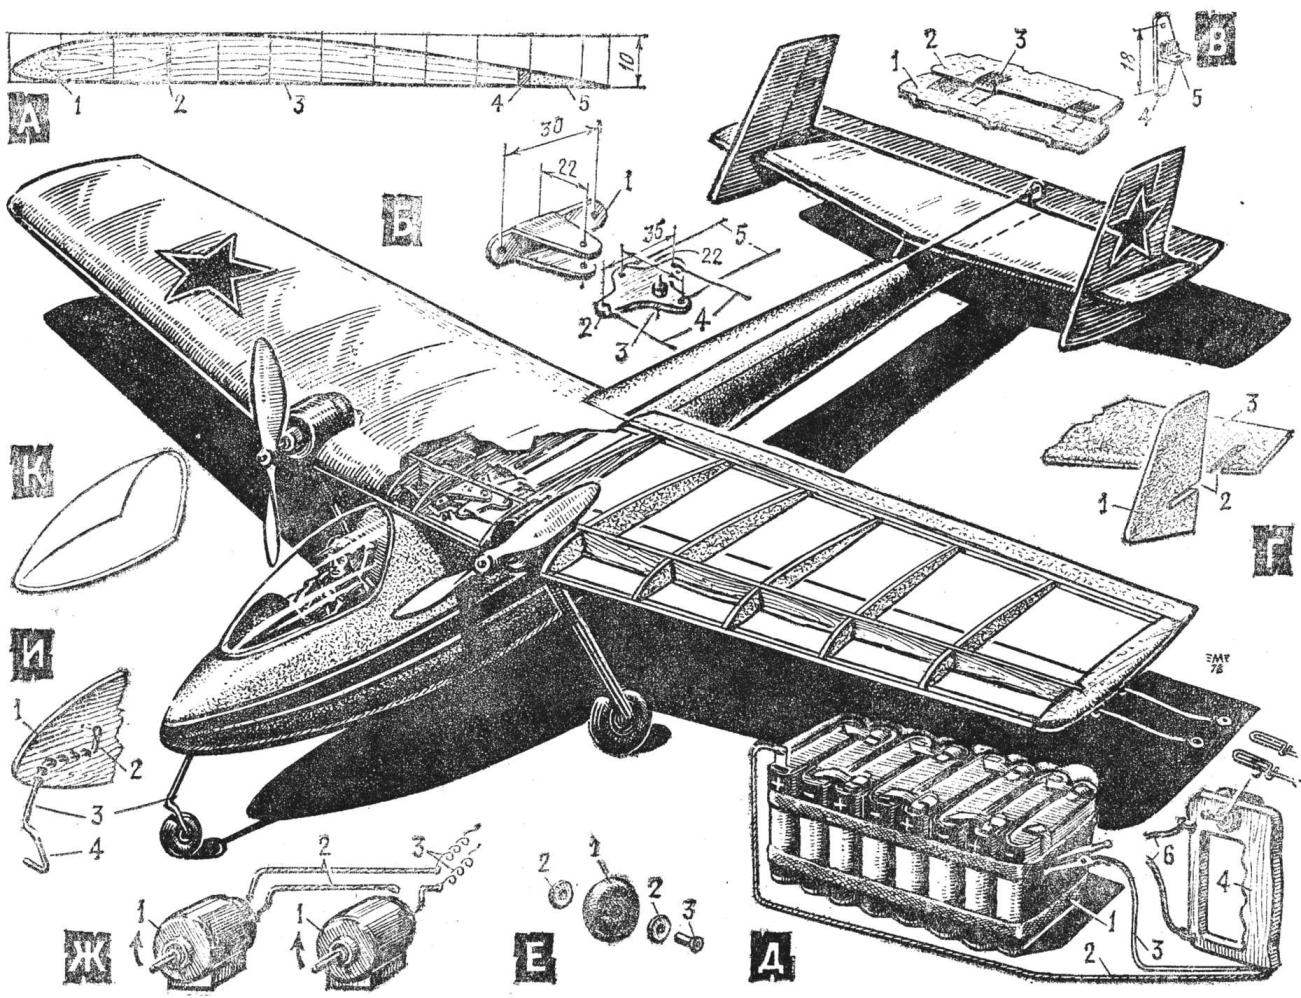 Fig. 1. The overall layout of twin-engine models with electric motors